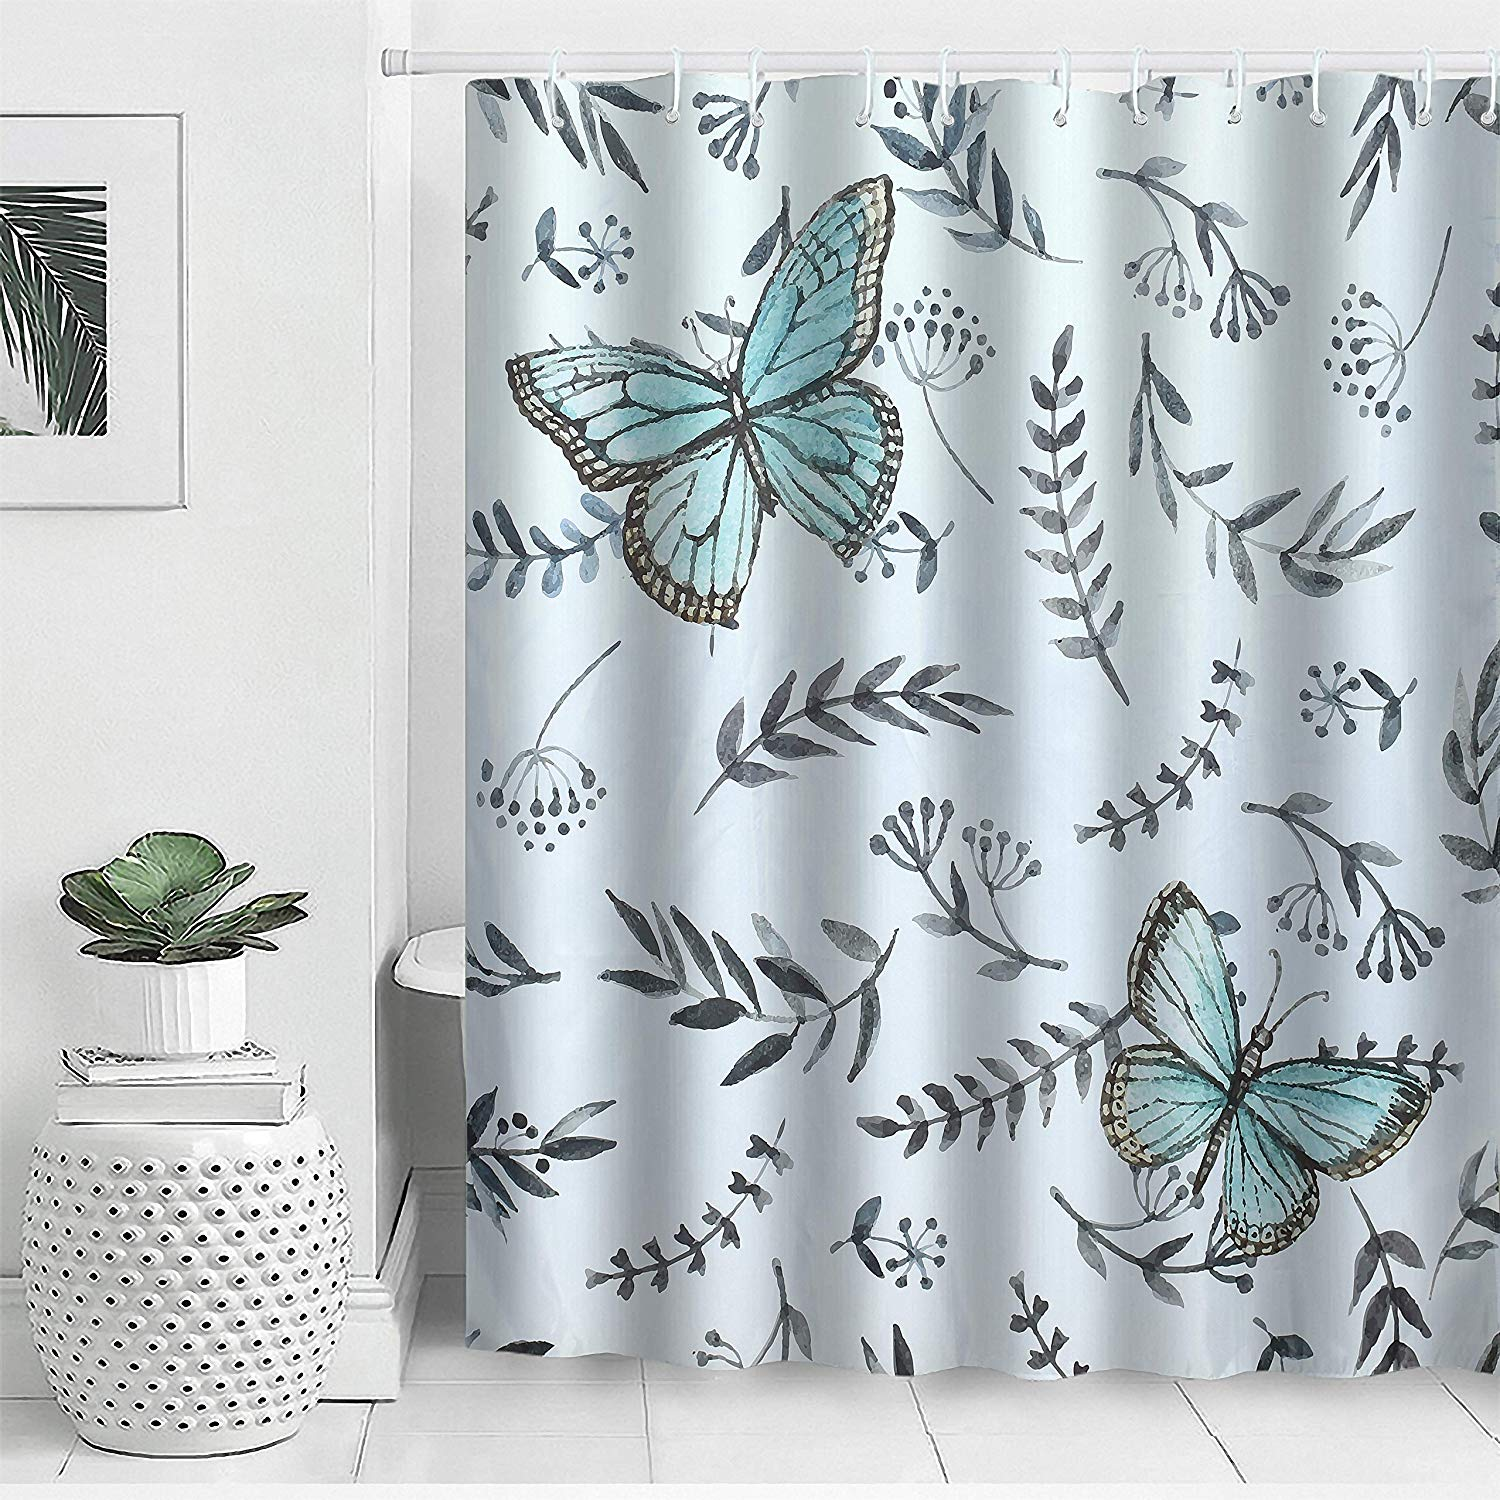 Details About Fabric Shower Curtain Waterproof Polyester Butterfly Bath Curtain Set With Hooks